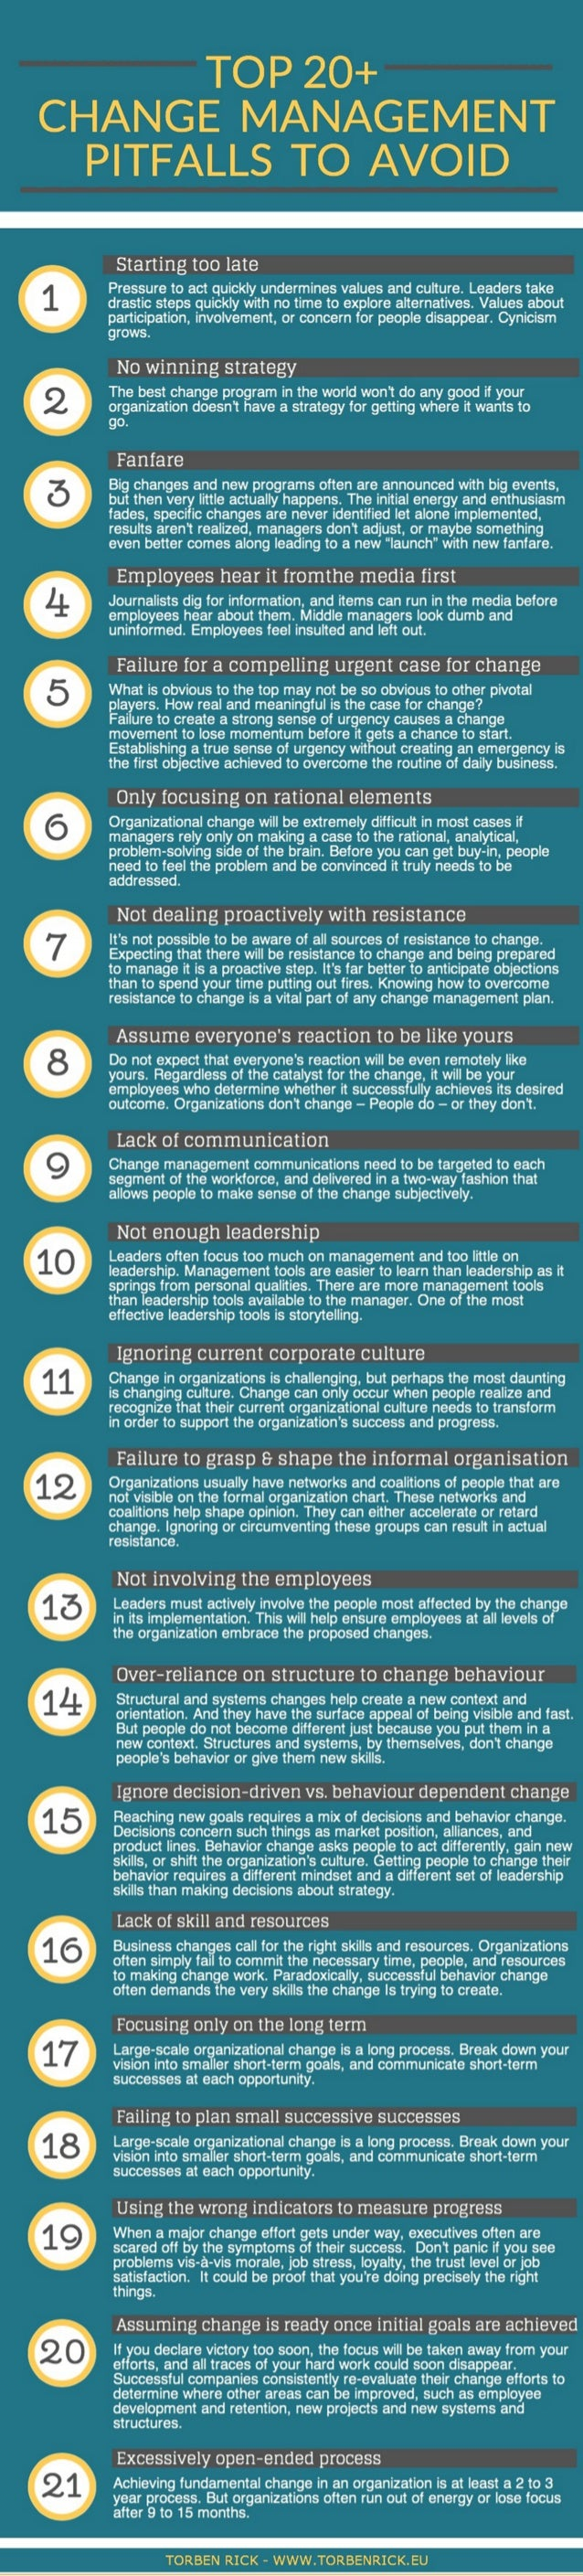 Infographic: Top 20 organisational change management pitfalls to avoid